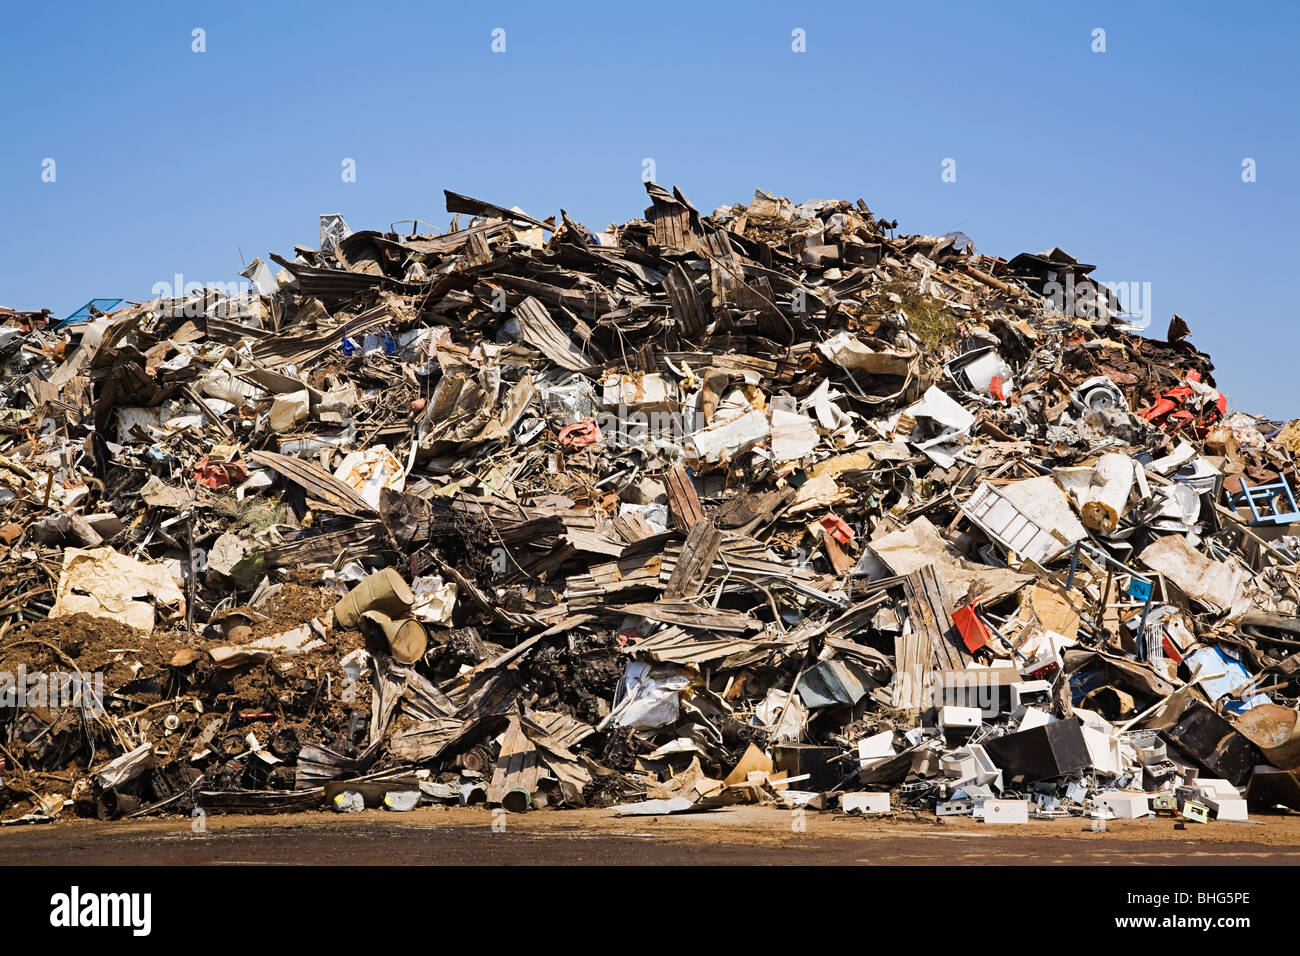 Waste pile - Stock Image